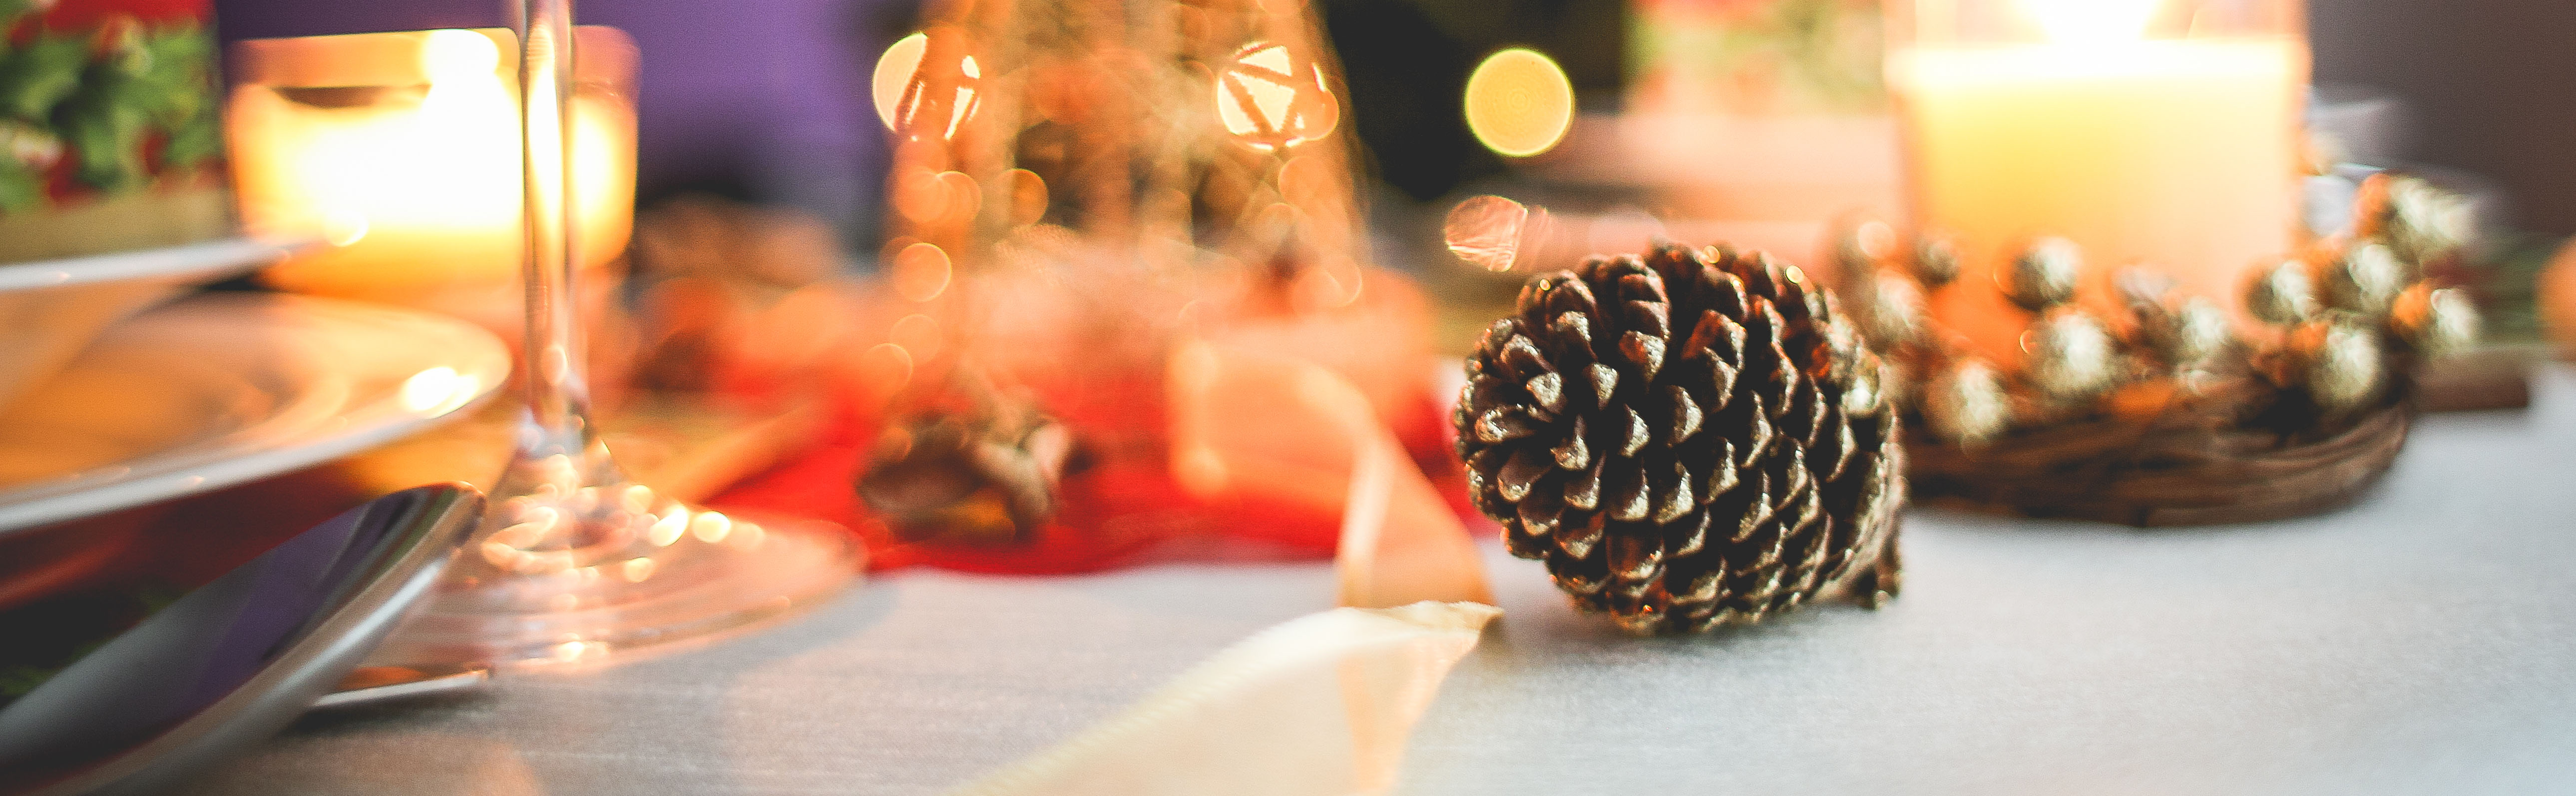 christmas-table-decoration-close-up-picjumbo-com-min 2.jpg